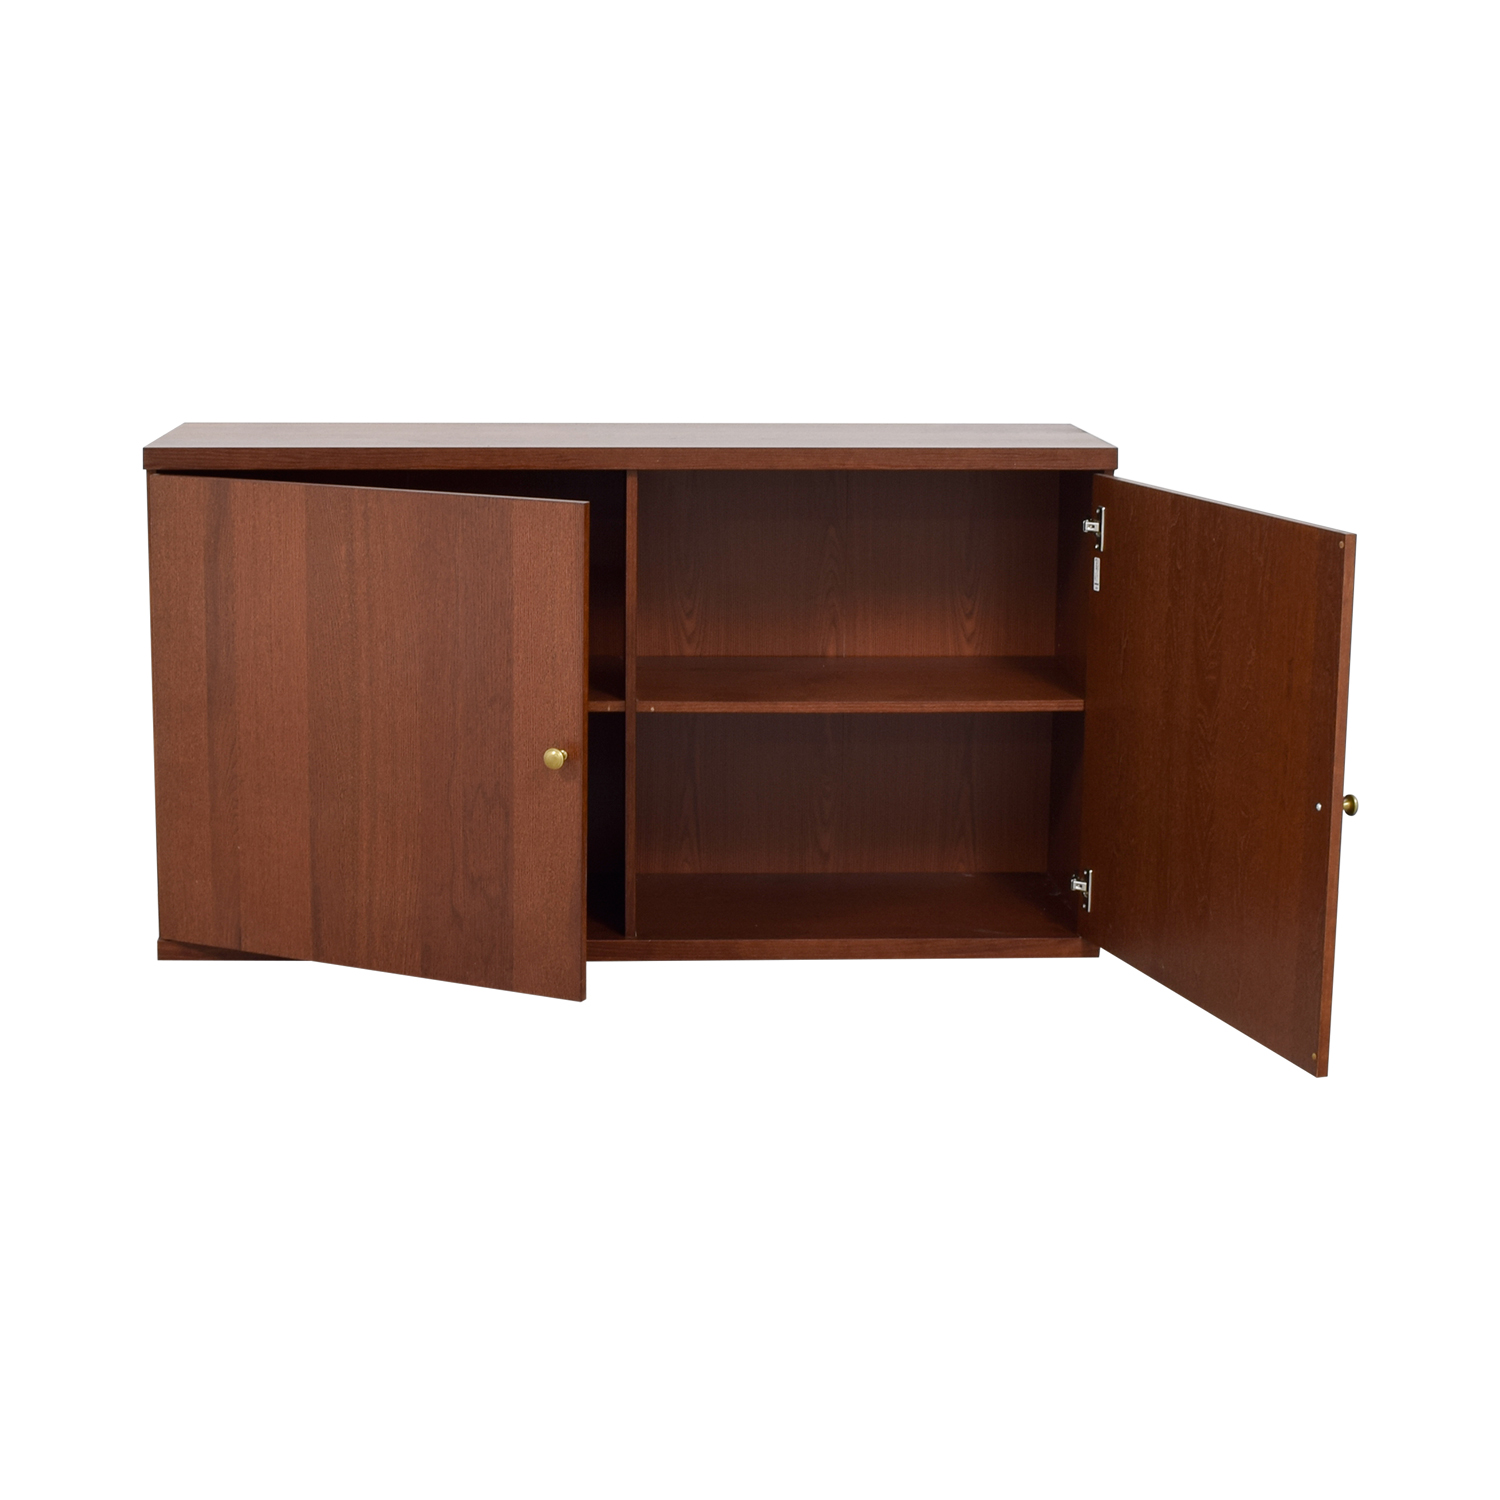 IKEA IKEA Wood Sideboard discount